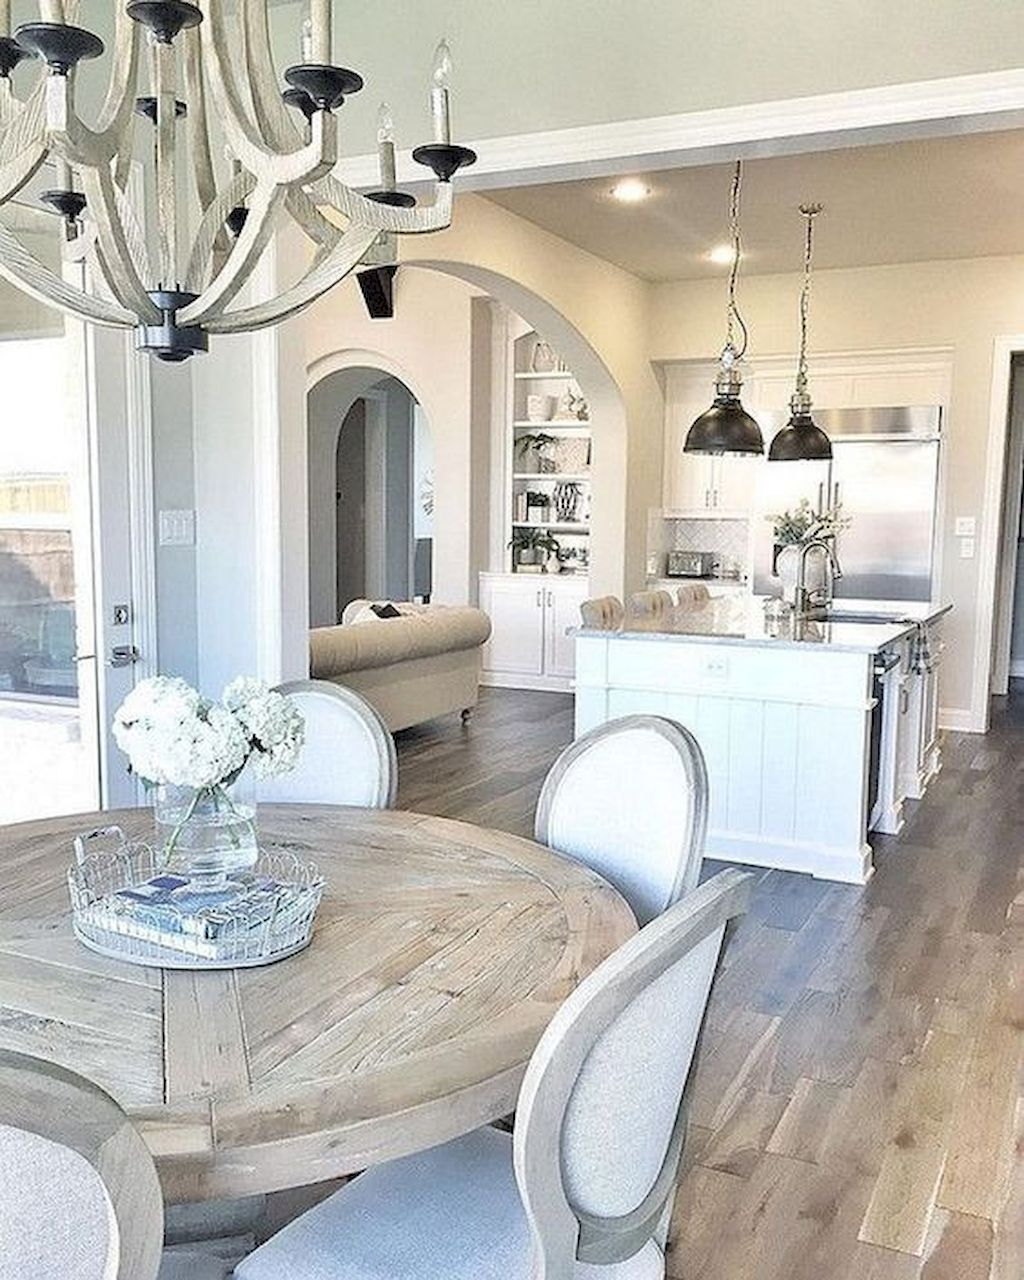 Modern French Country Dining Room Table Decor Ideas 49 Farmhouse Kitchen Design Farmhouse Dining Room Farmhouse Dining